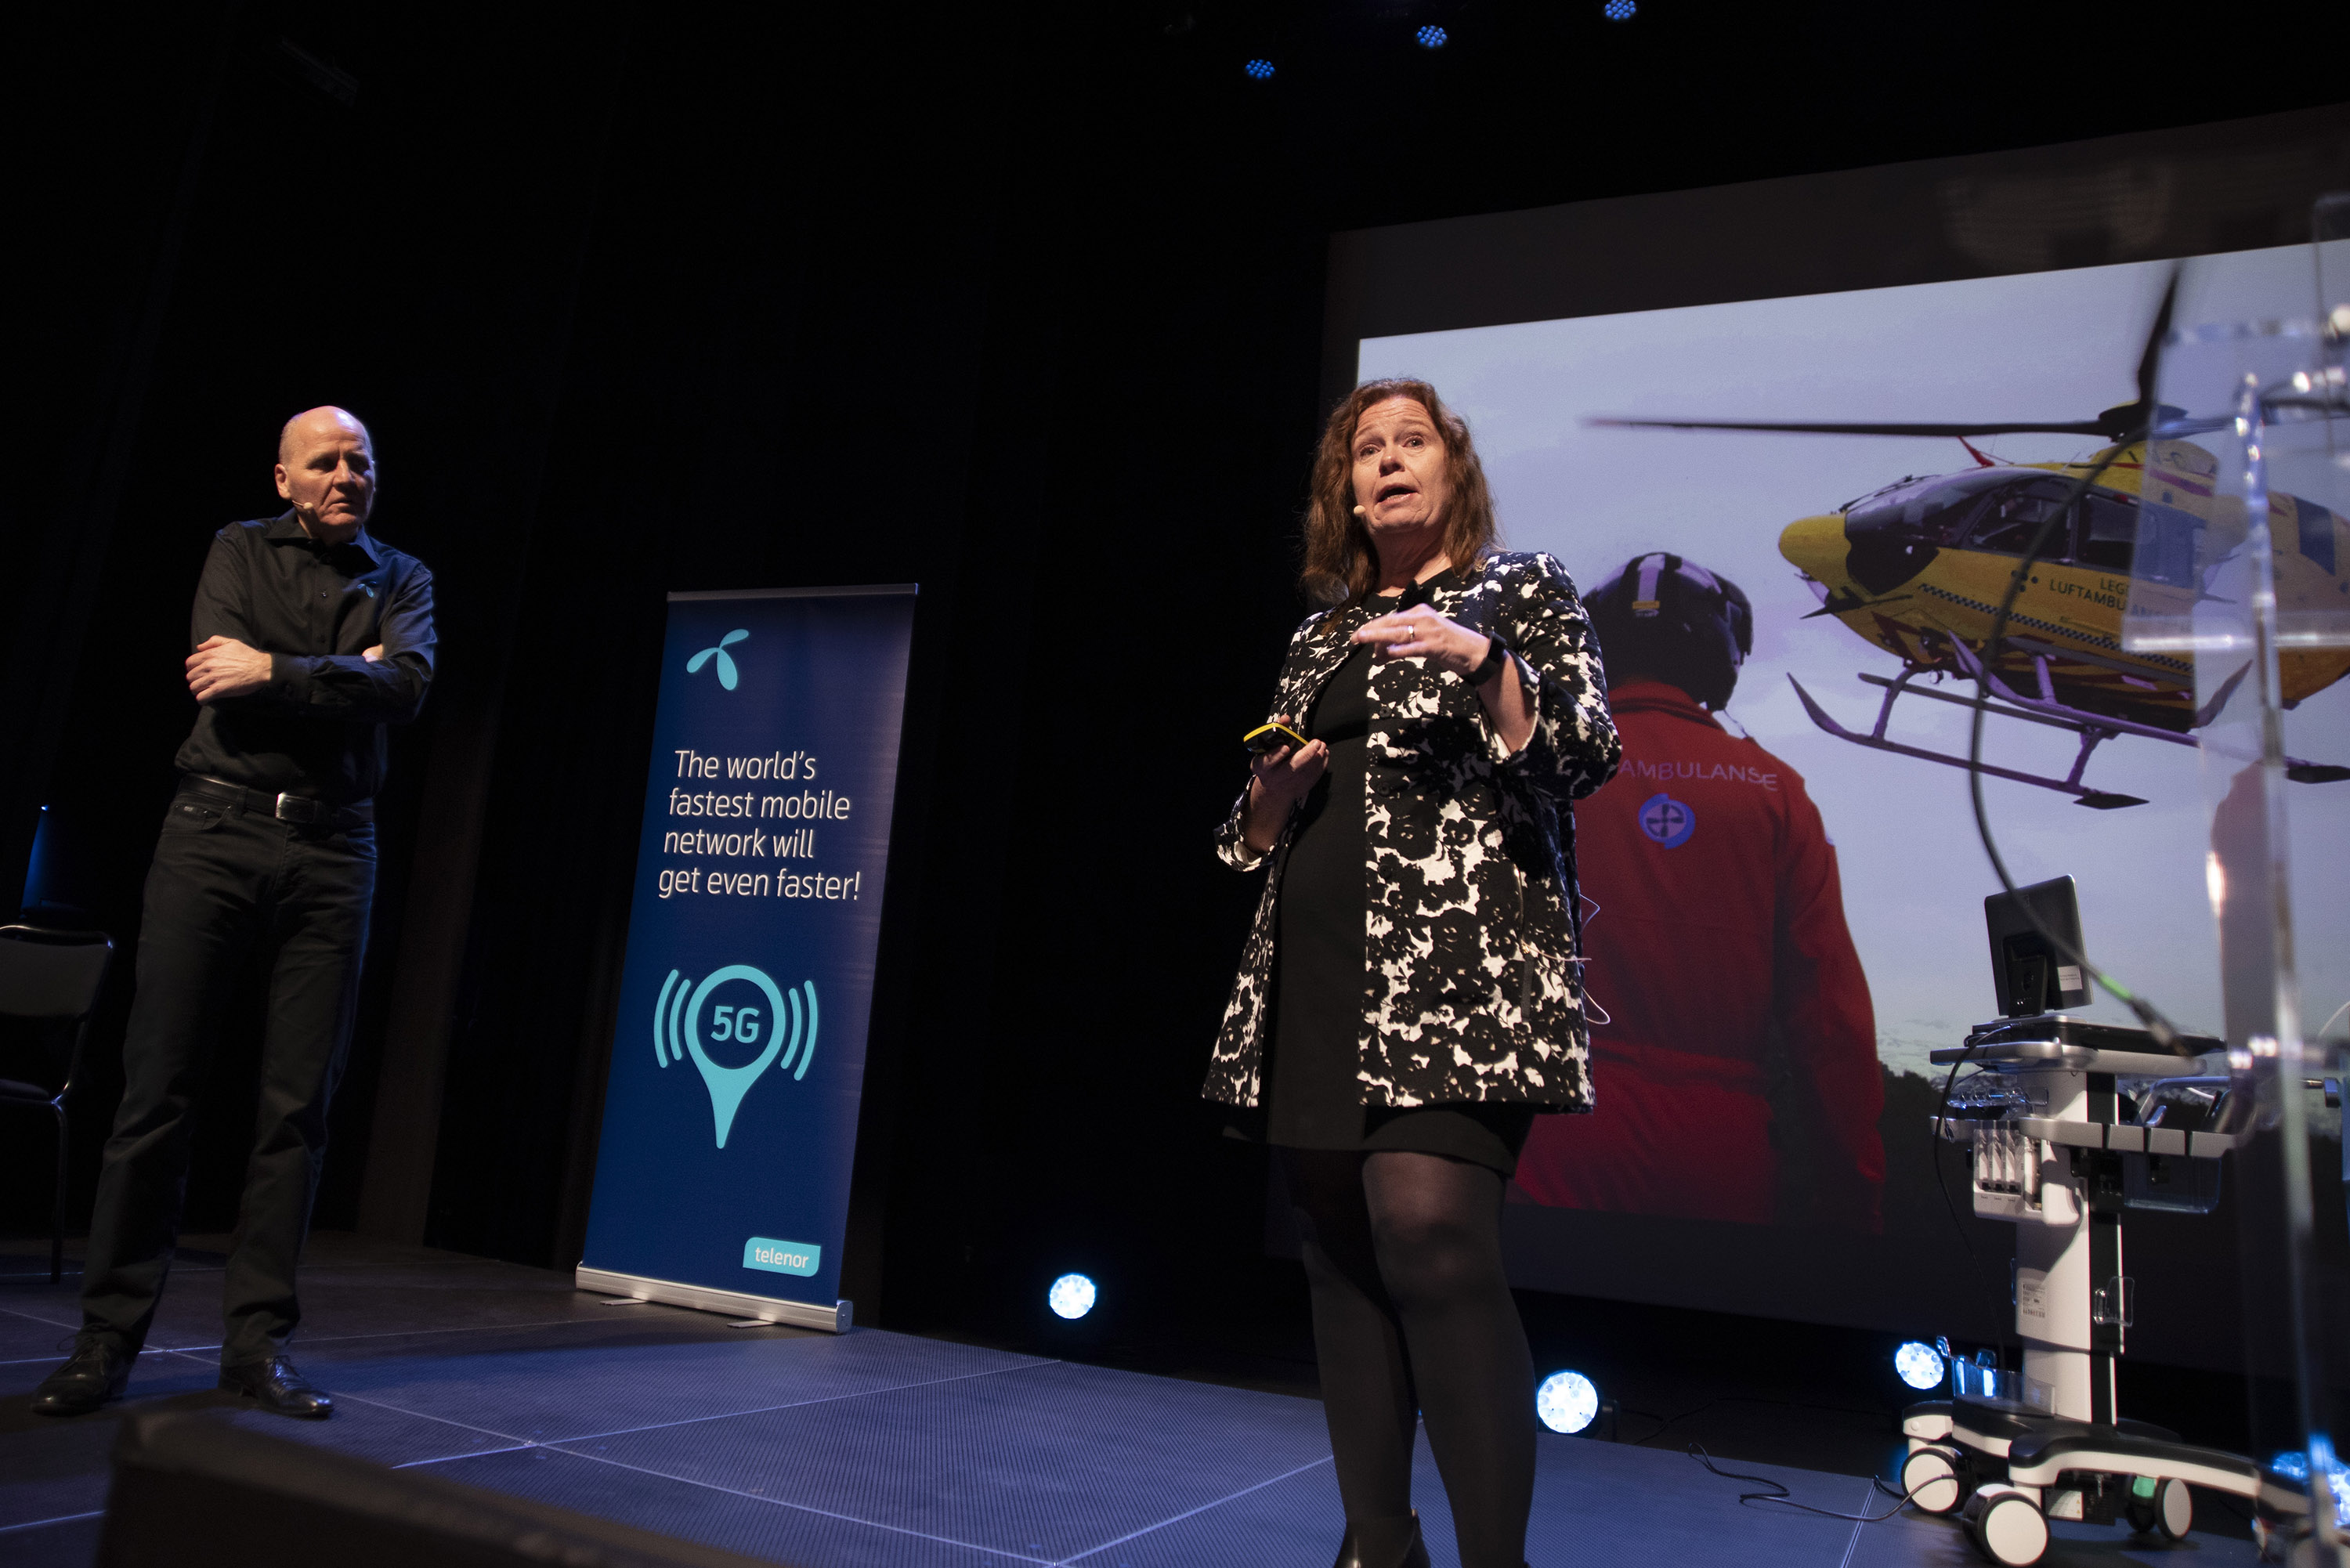 Telenor to expand its 5G piloting in Norway